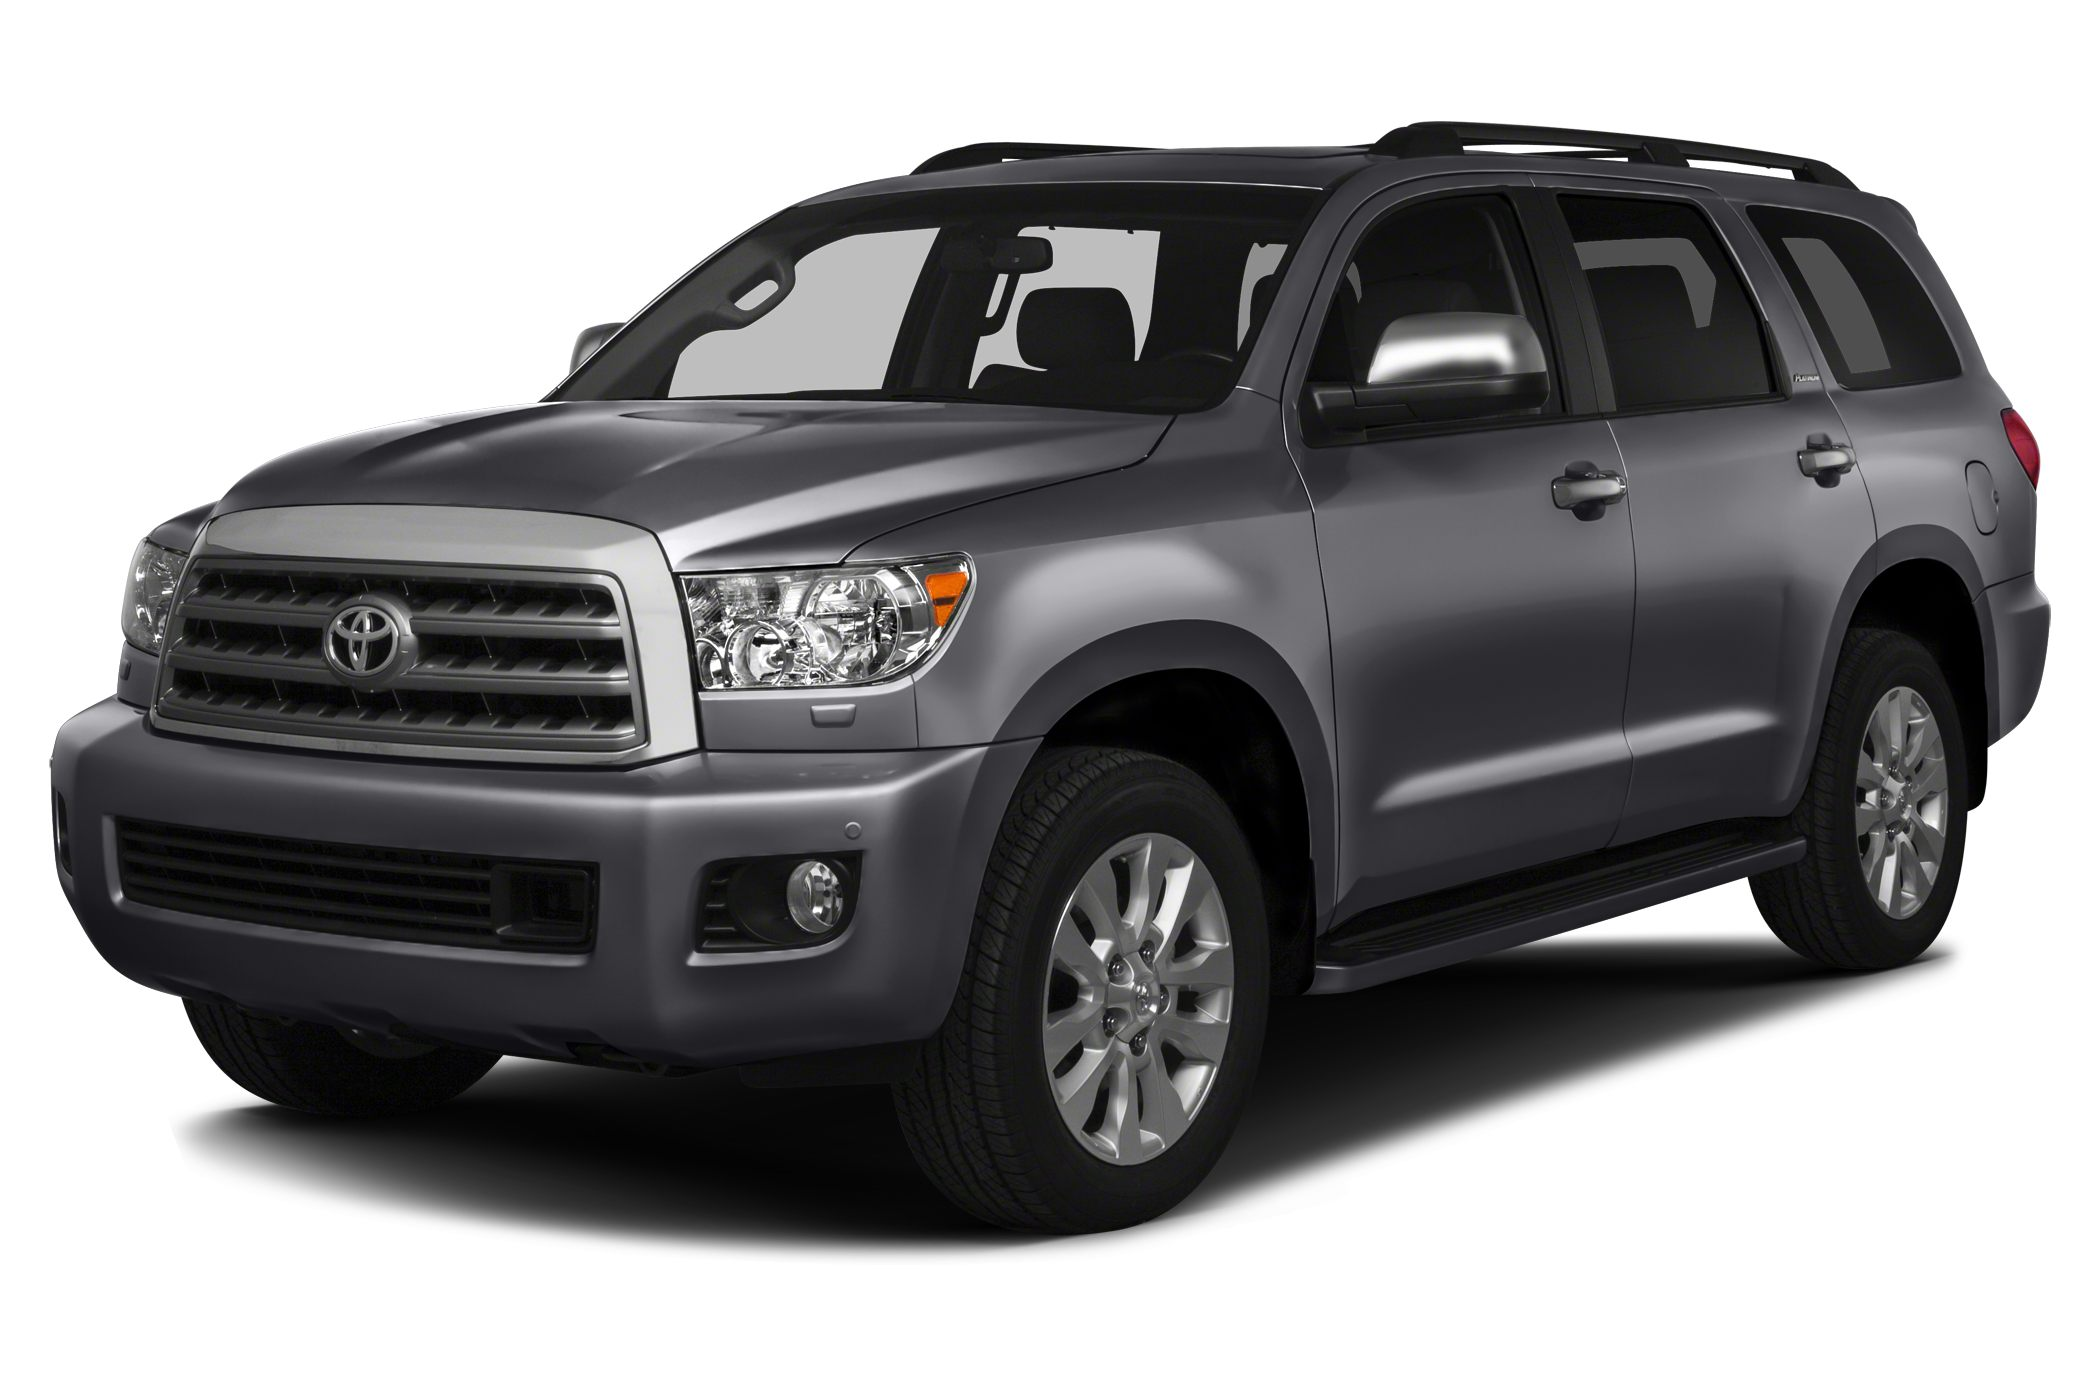 2015 Toyota Sequoia Platinum SUV for sale in Lockport for $65,975 with 5 miles.